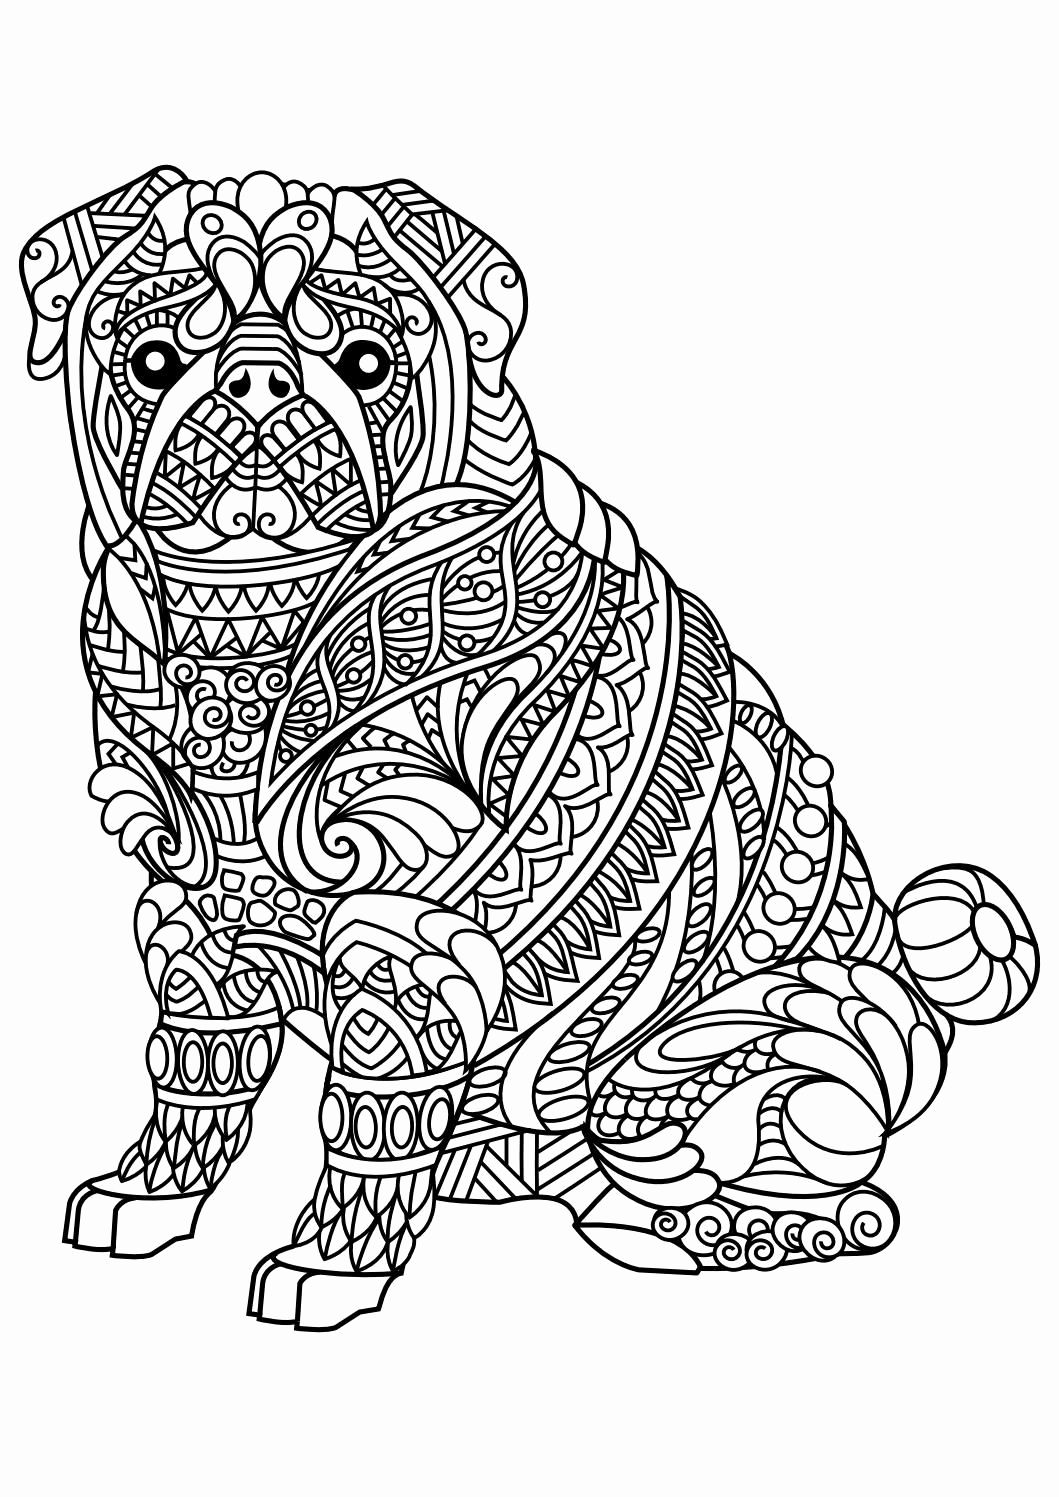 Coloring Pages For Kids Detailed Animals Horse Coloring Pages Dog Coloring Book Dog Coloring Page